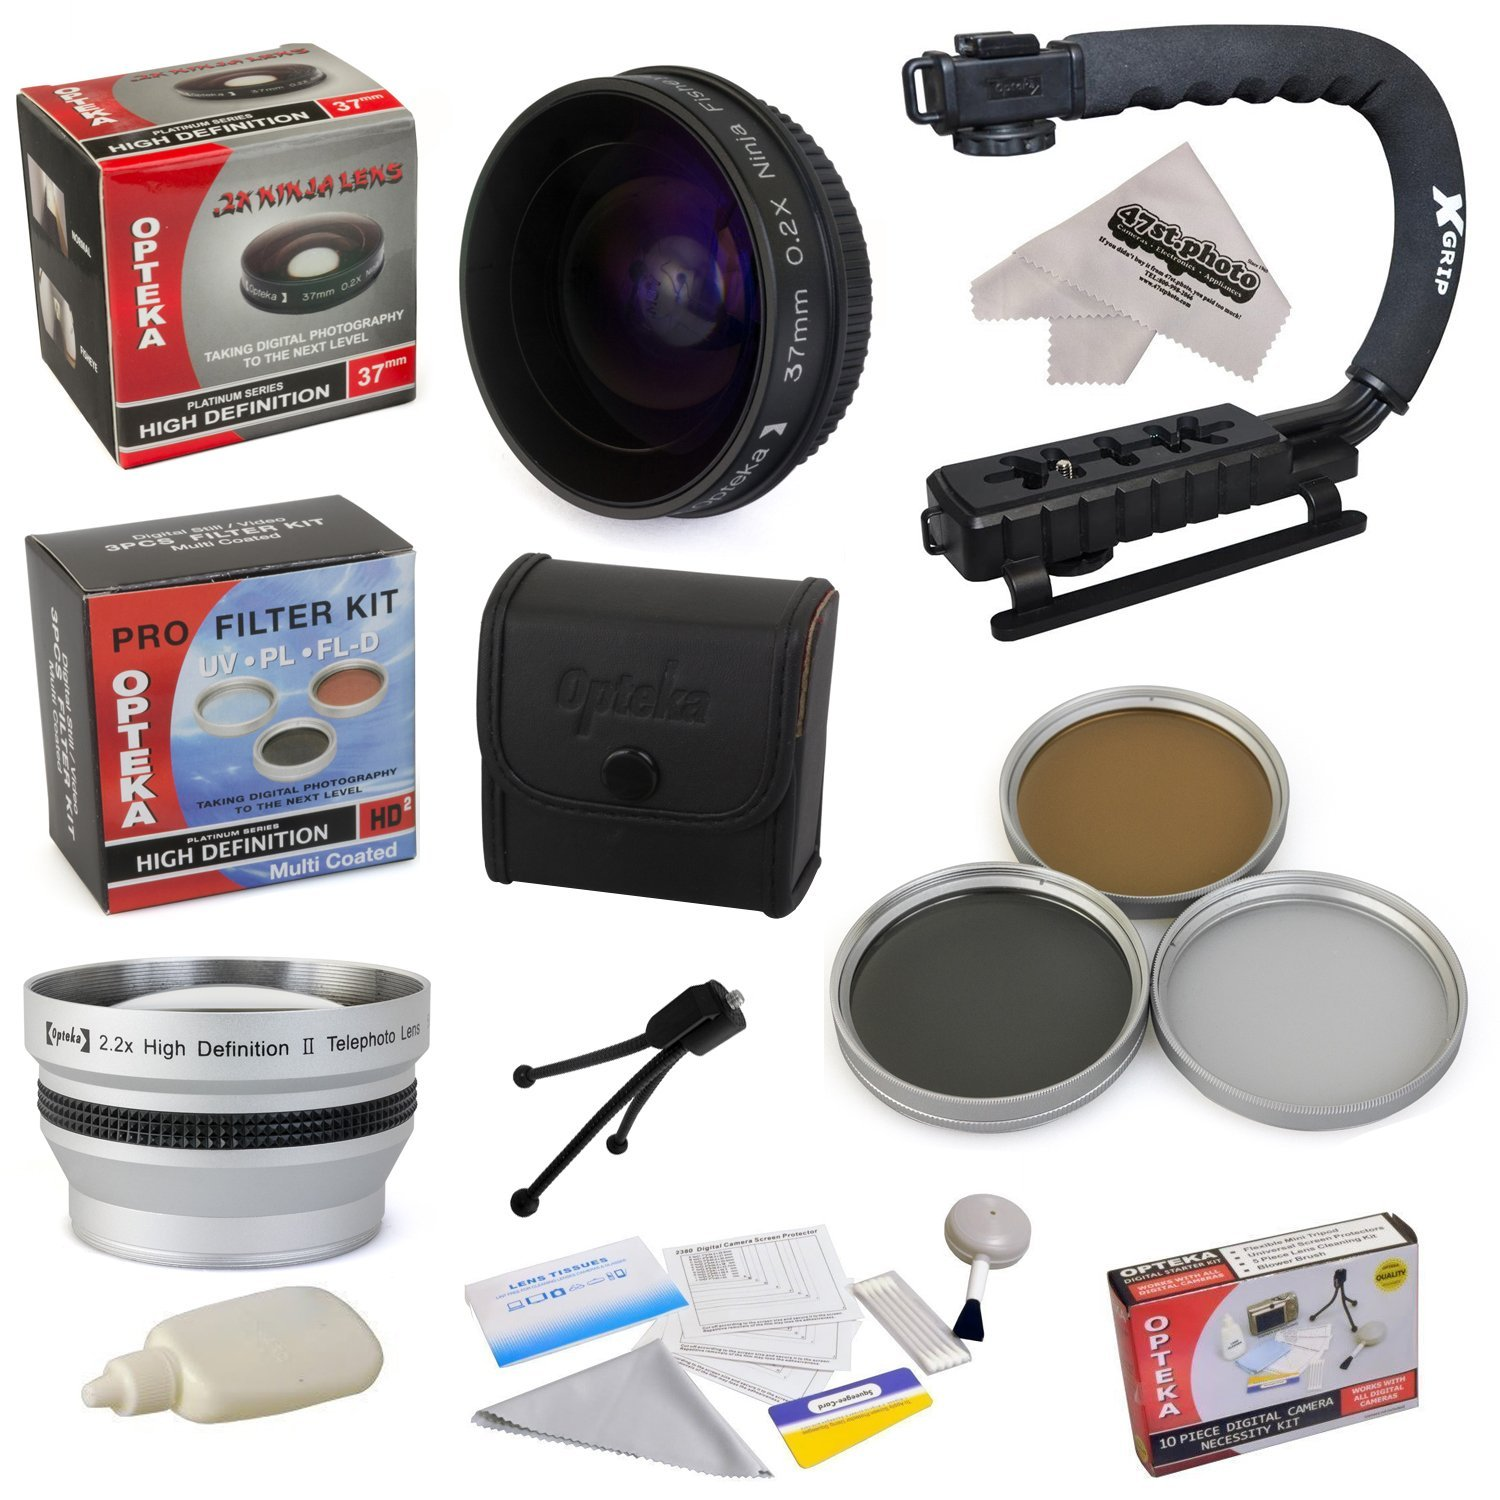 30.5mm 3 Piece H All Sport Accessory Package Kit for JVC GZ-HD320 GZ-HM200 GZ-HM400 GZ-MG630 GZ-MG670 GZ-MG680 GZ-MS120 GZ-MS130 GZ-X900 Camcorder Video Camera includes 37mm 2.2x Extreme HD AF Telephoto Lens 37mm 0.2X Low-Profile Ninja Fisheye Lens